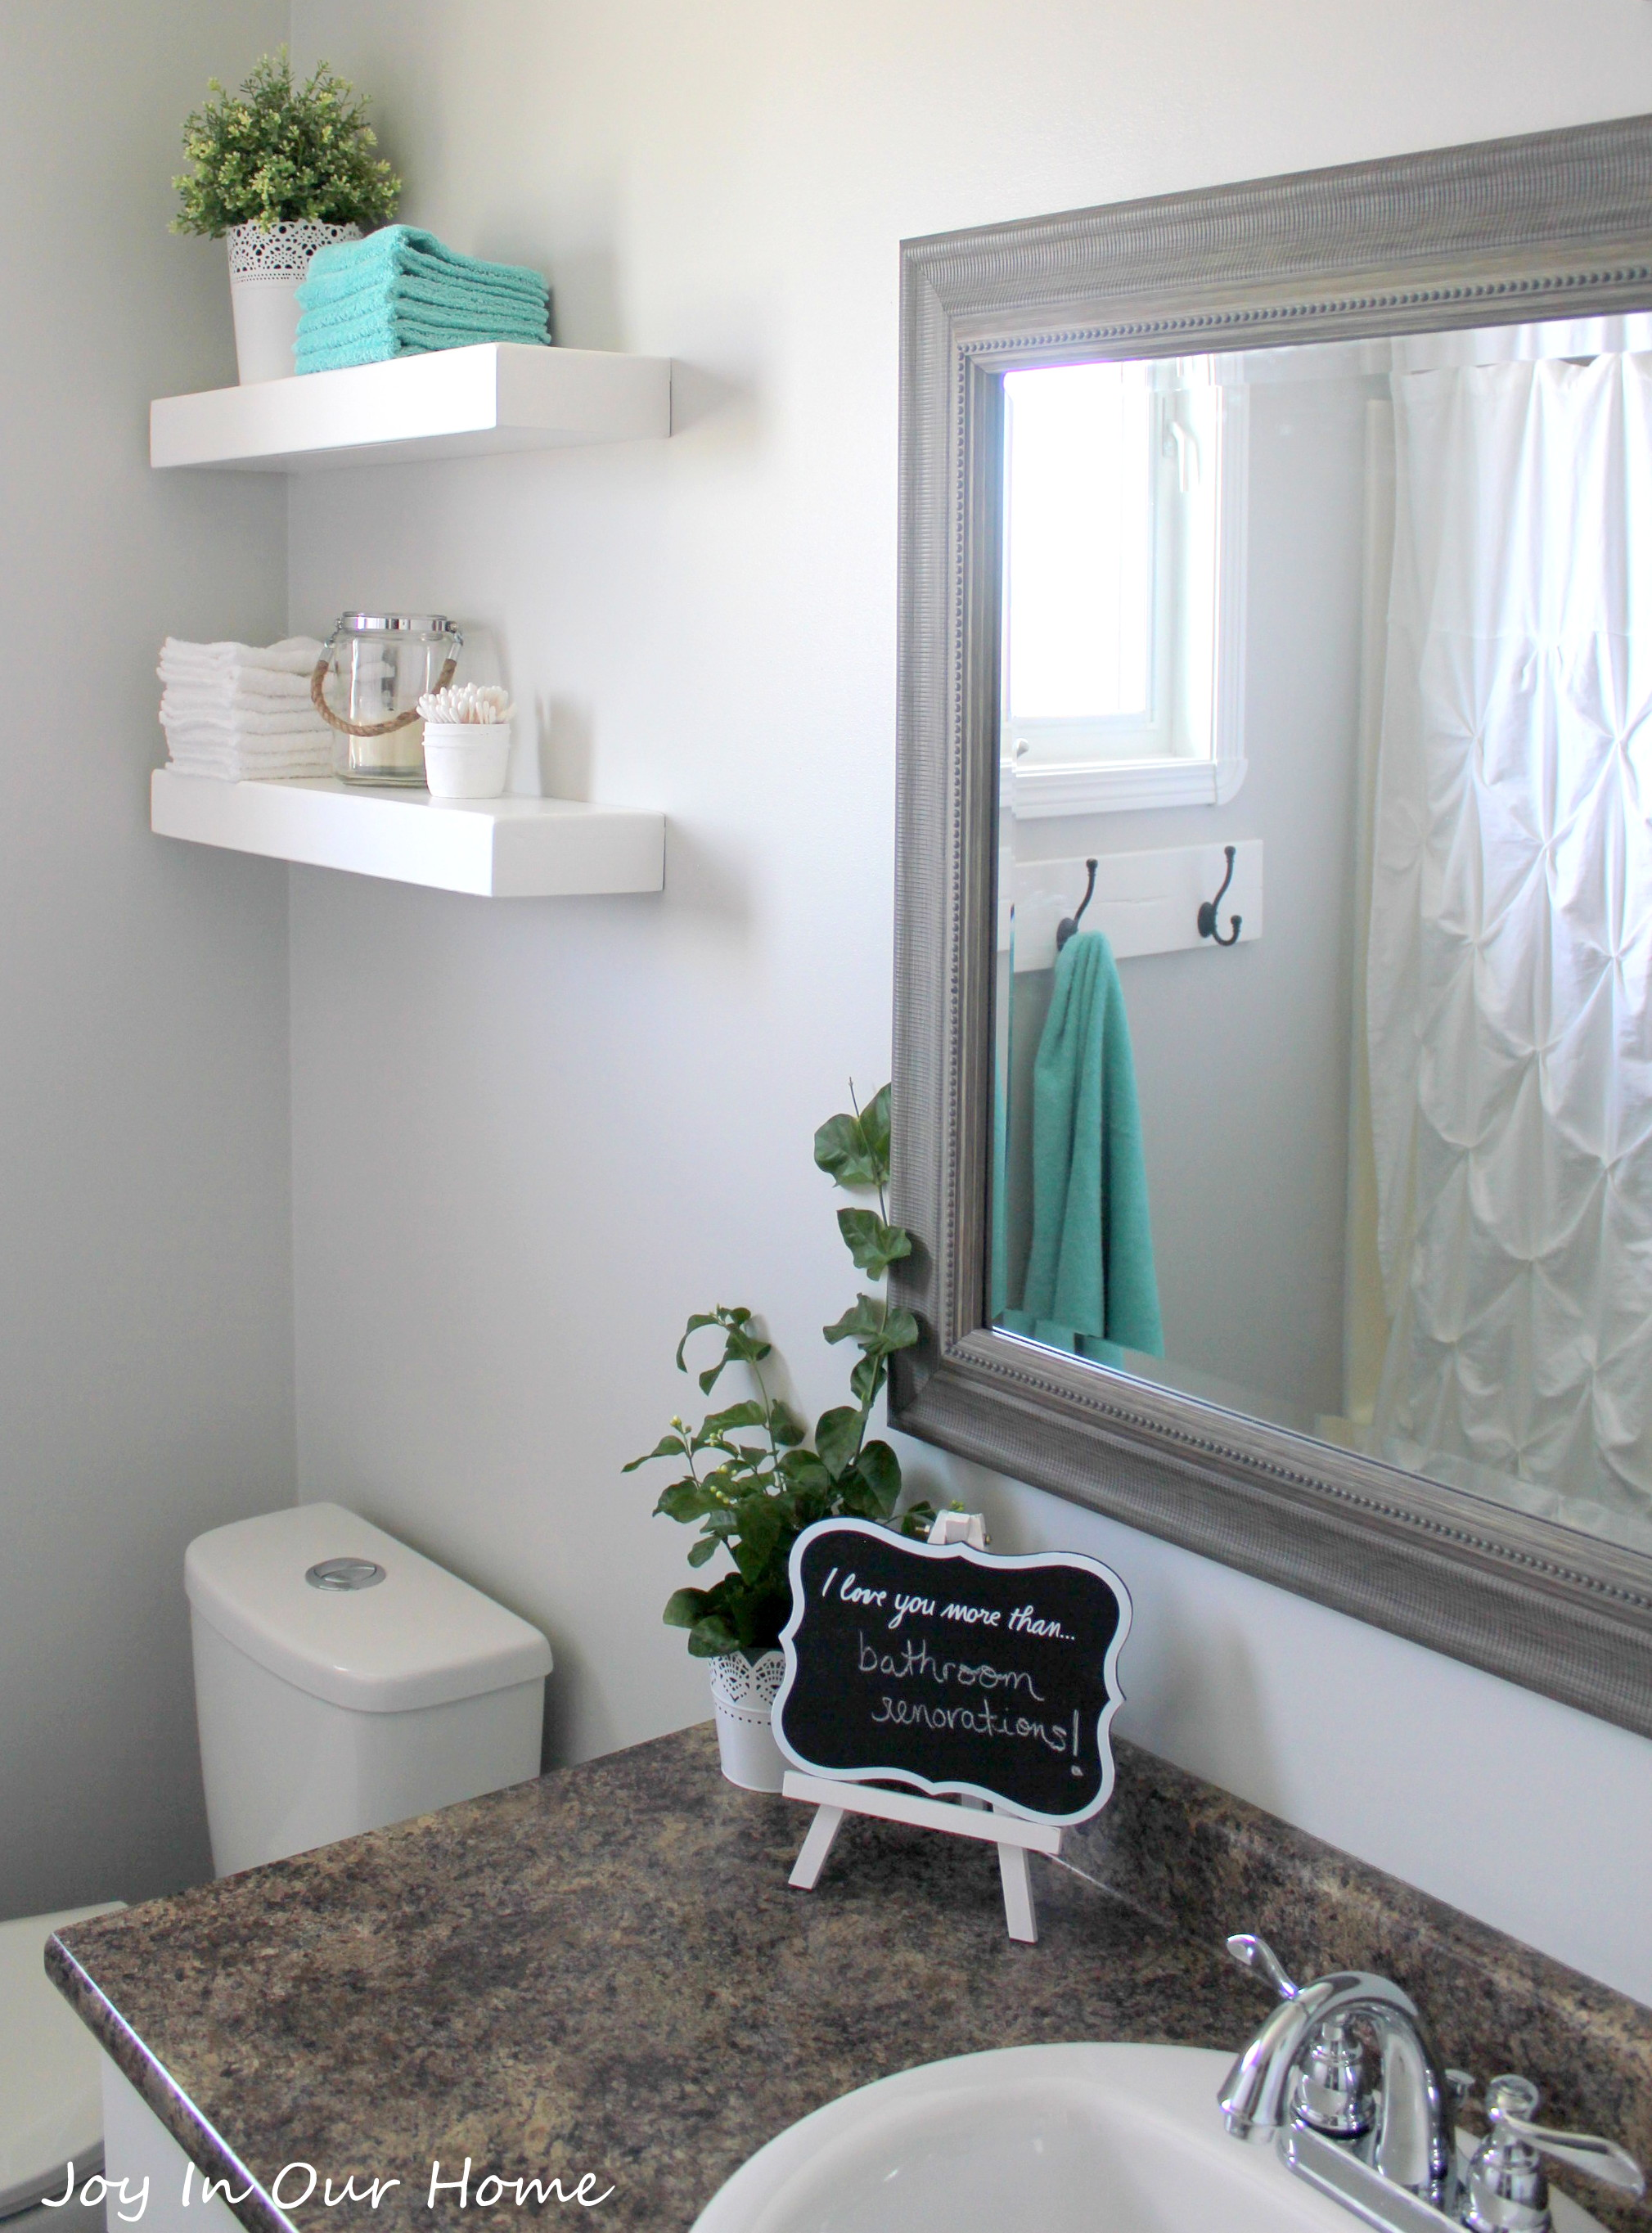 Our Bathroom Makeover Product Source | Joy in Our Home on Apartment Small Bathroom Decor Ideas  id=53015